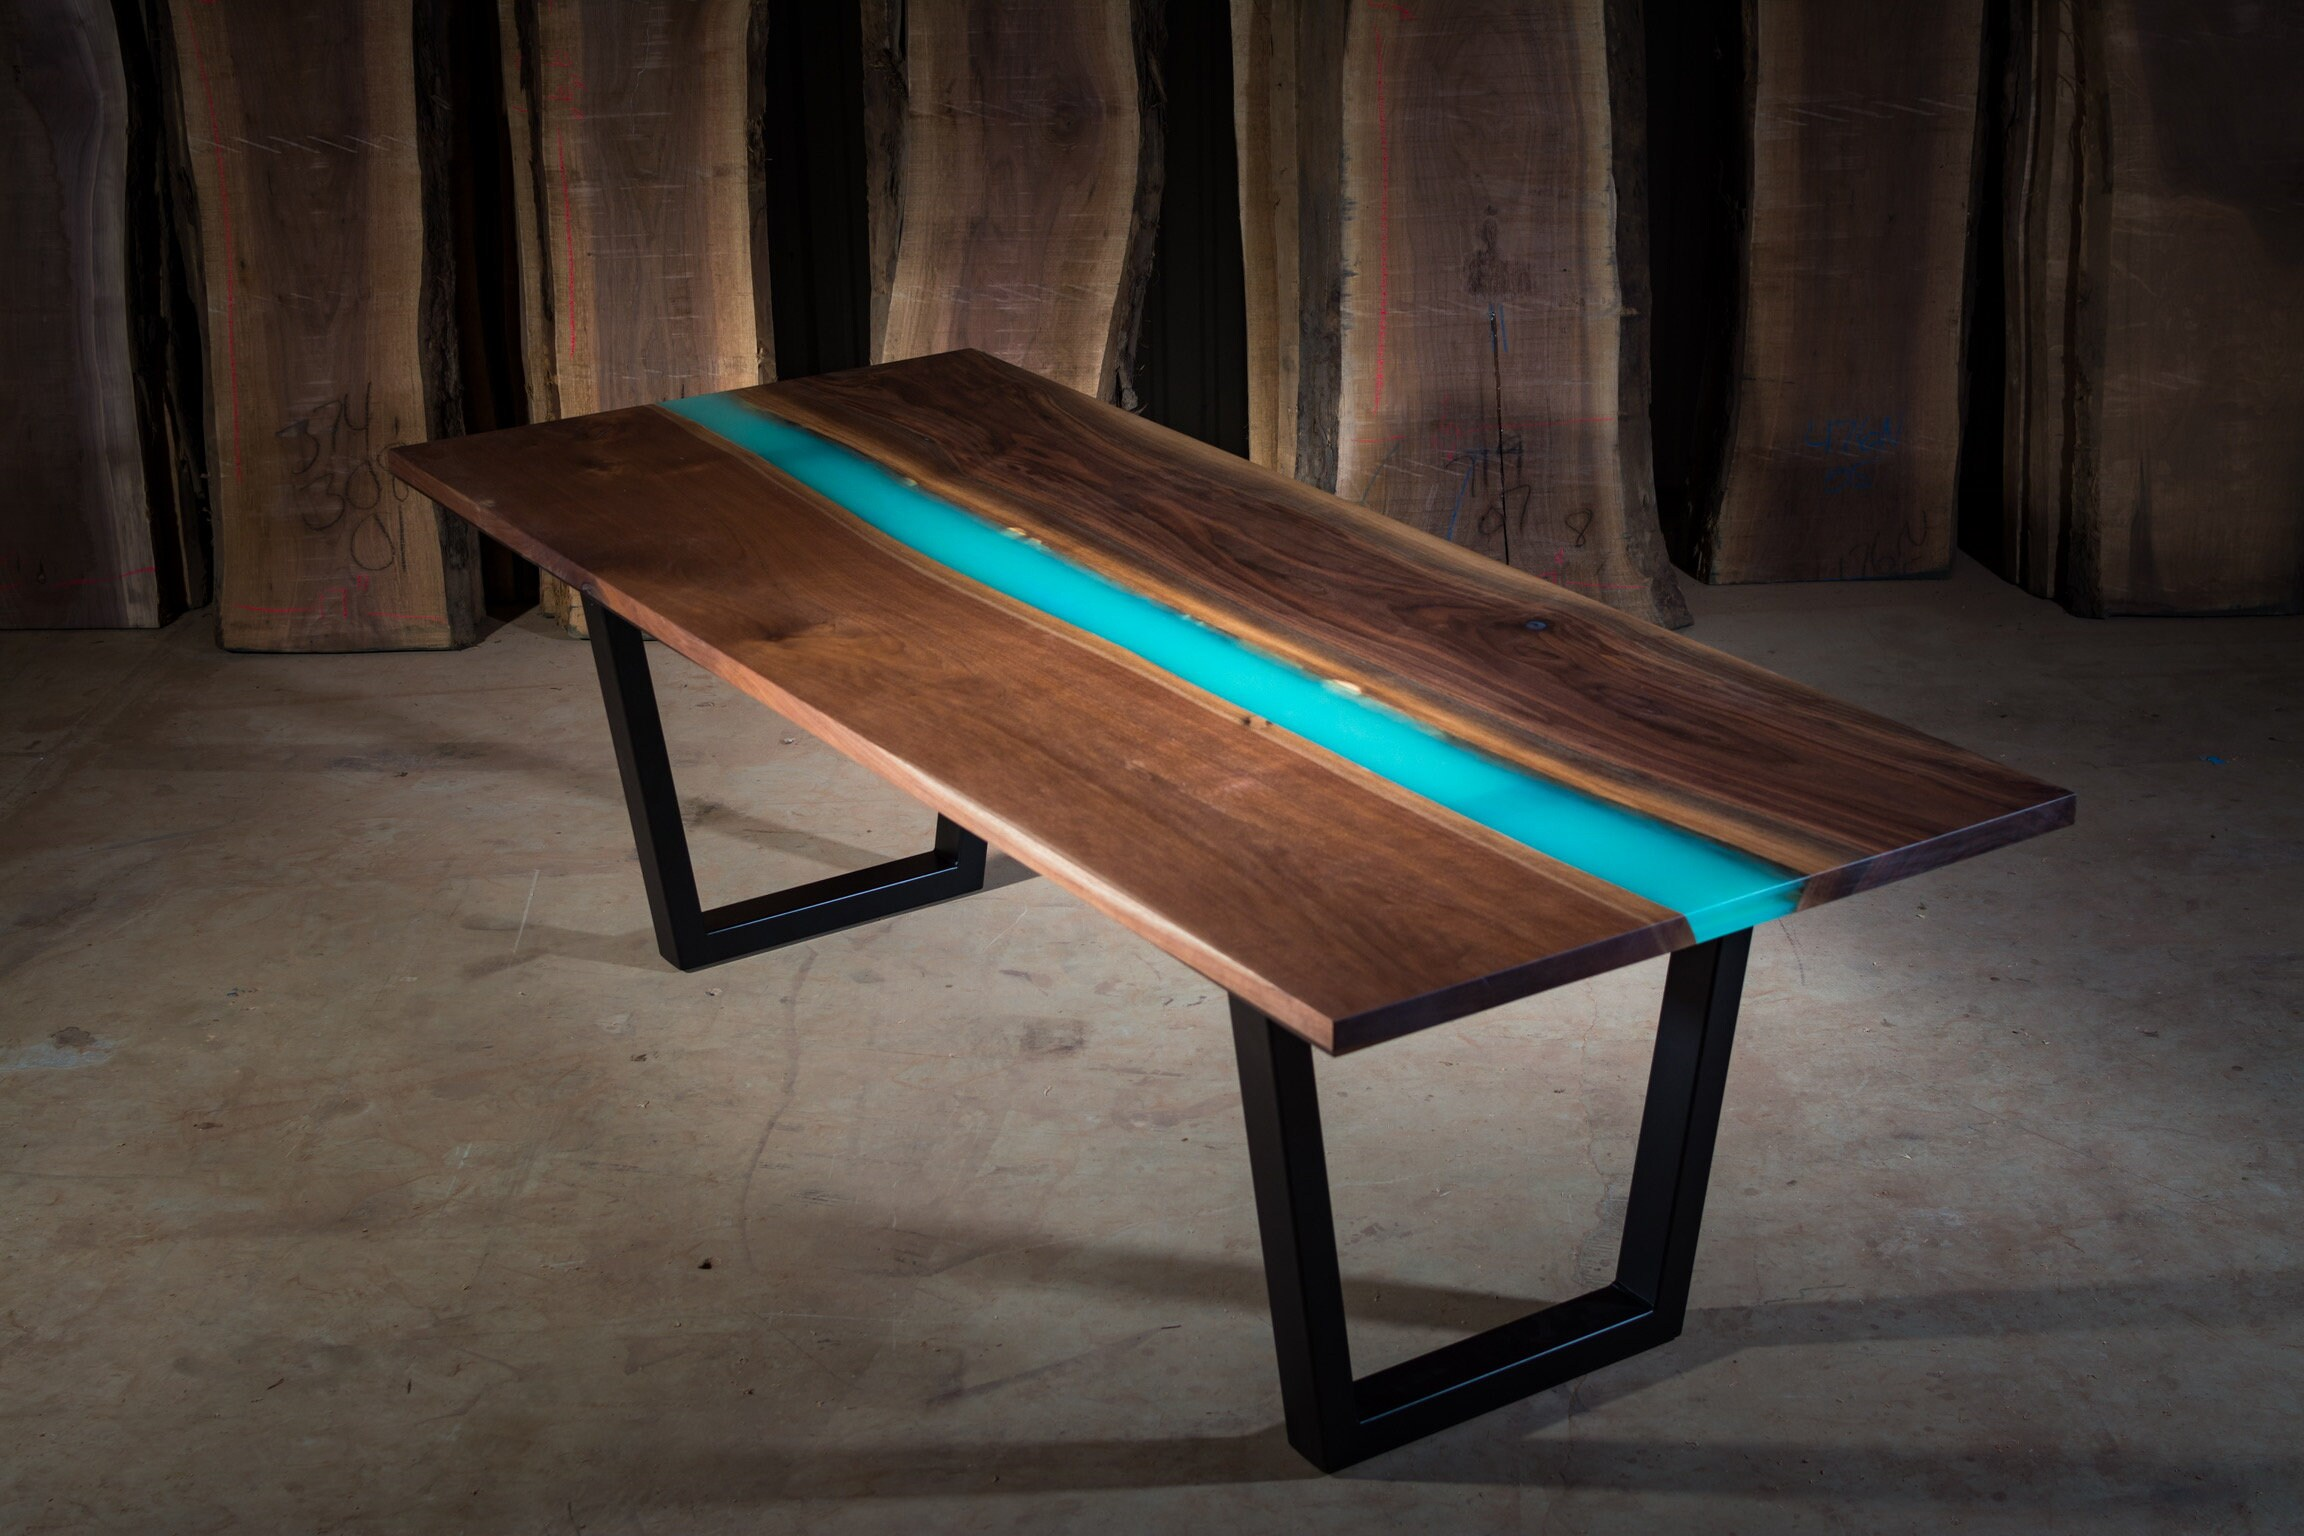 Glow in the dark river table etsy - Glow in the dark table ...